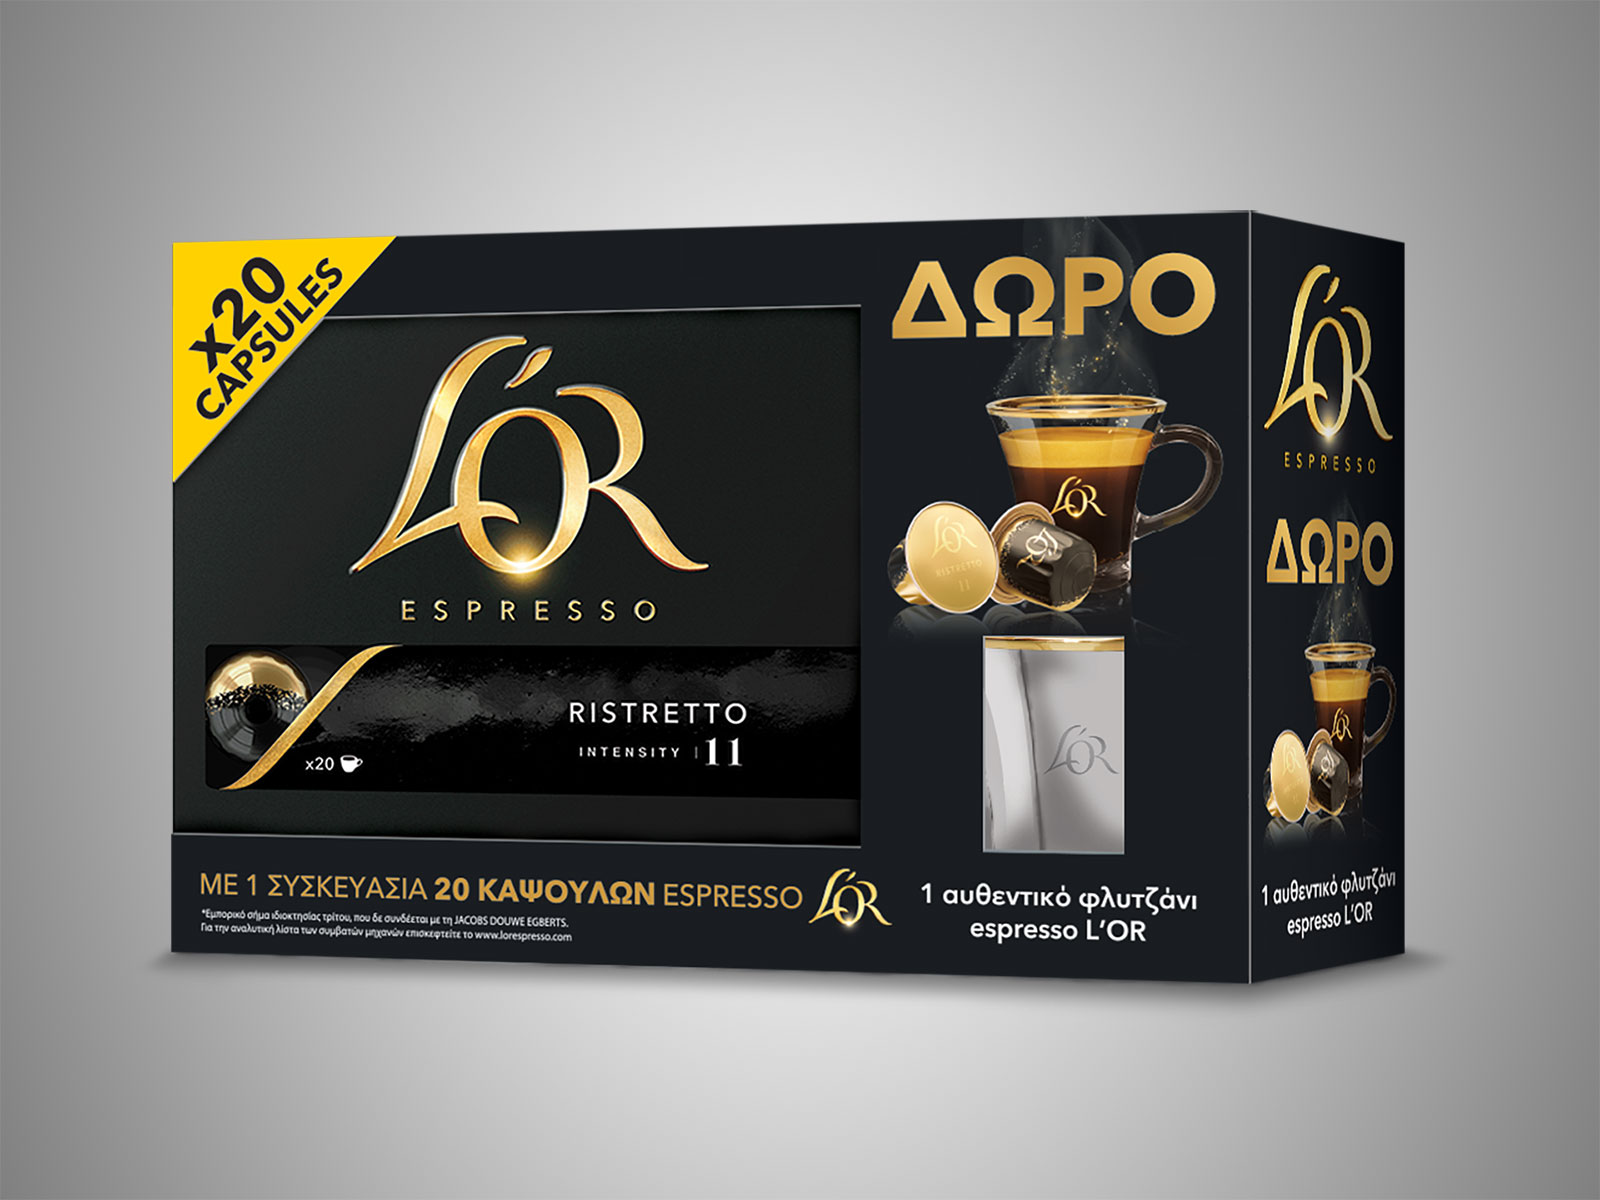 L'OR Espresso Promobox packshot